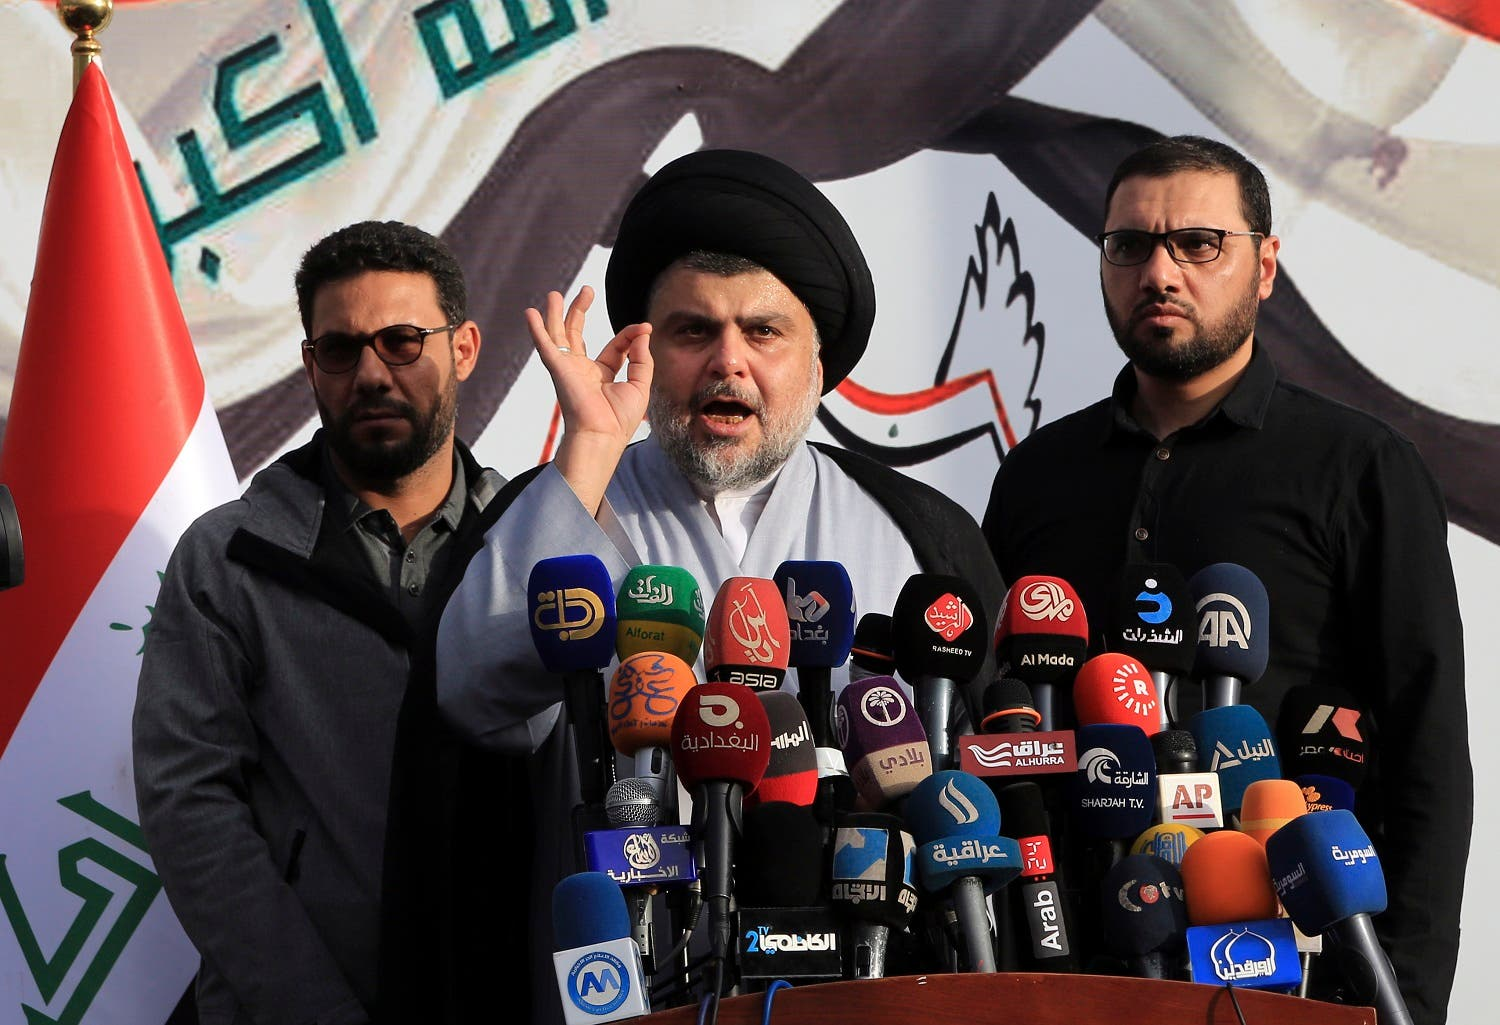 Shiite cleric Muqtada al-Sadr, center, gives a speech to his supporters before entering the highly fortified Green Zone, in Baghdad, Iraq, Sunday, March, 27, 2016. Al-Sadr brushed past security checkpoints to enter Baghdad's highly fortified Green Zone Sunday after weeks of protests in the Iraqi capital. (AP)